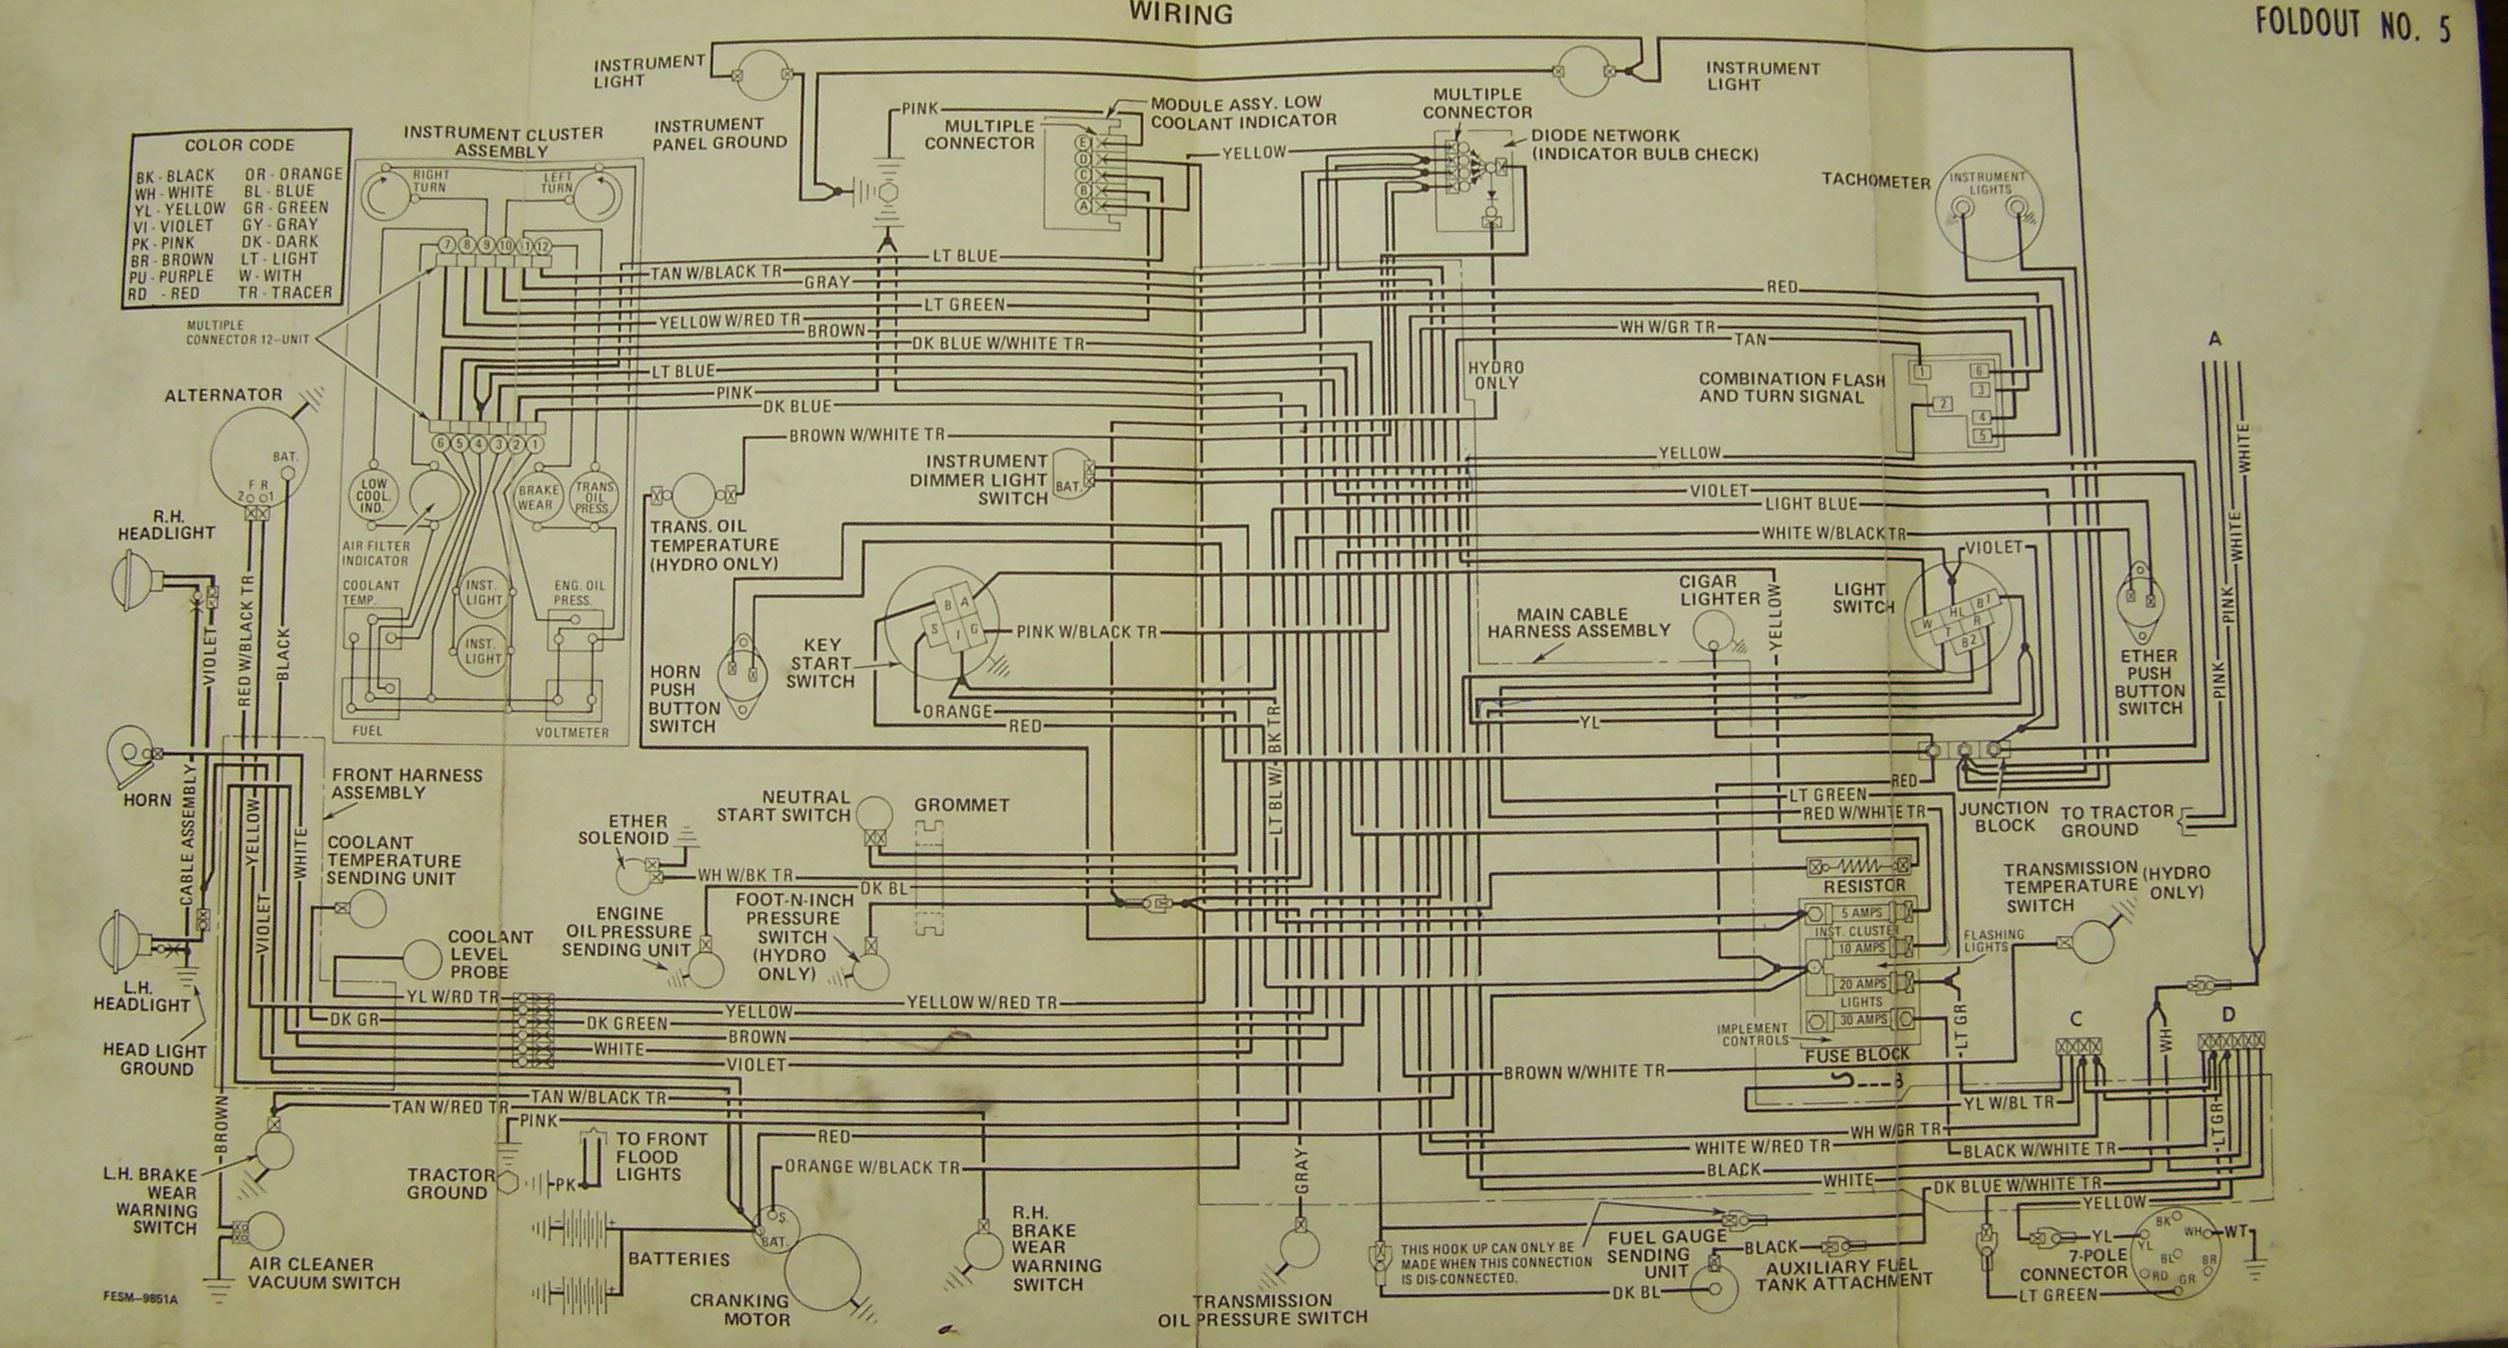 86series5 ih 574 wiring diagram case 430 tractor wiring diagram \u2022 wiring International 4300 Wiring Diagram Schematics at creativeand.co